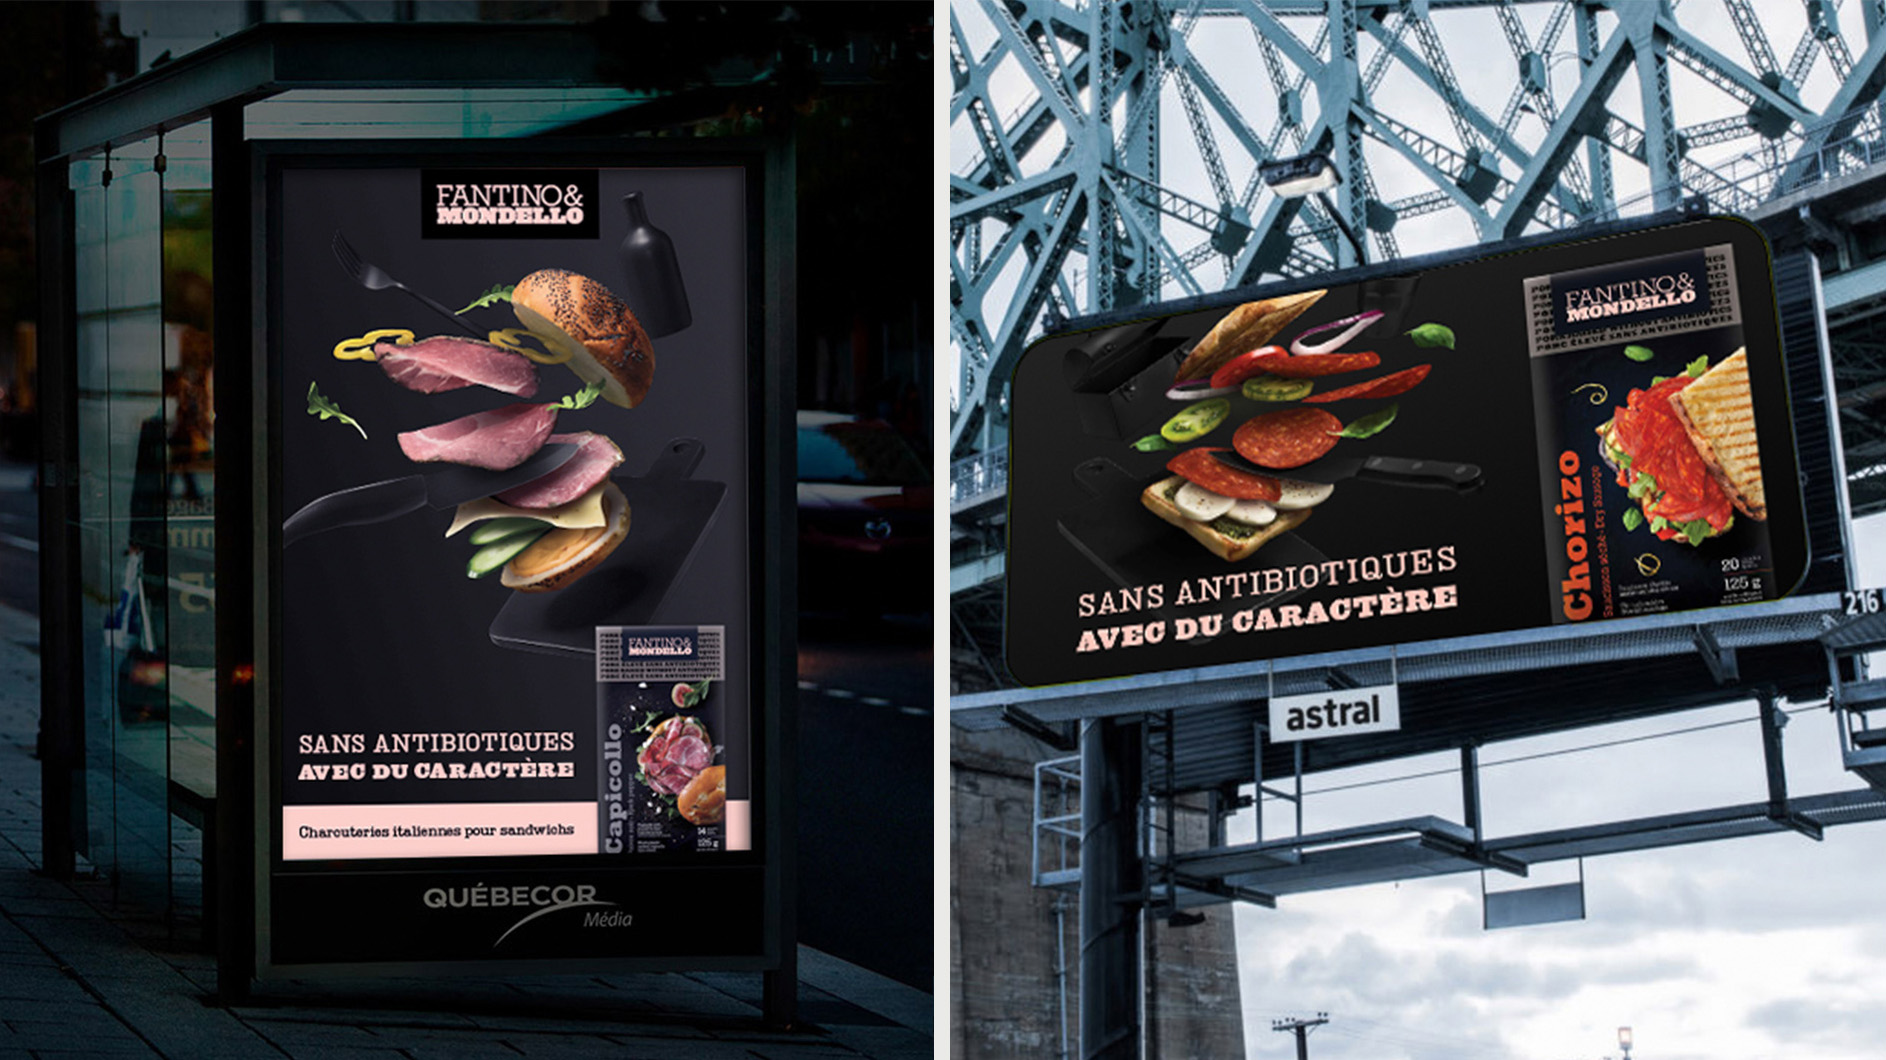 capicollo ham ad on bus stop photographed by Mathieu Lévesque for Fantino & Mondello with Rethink agency